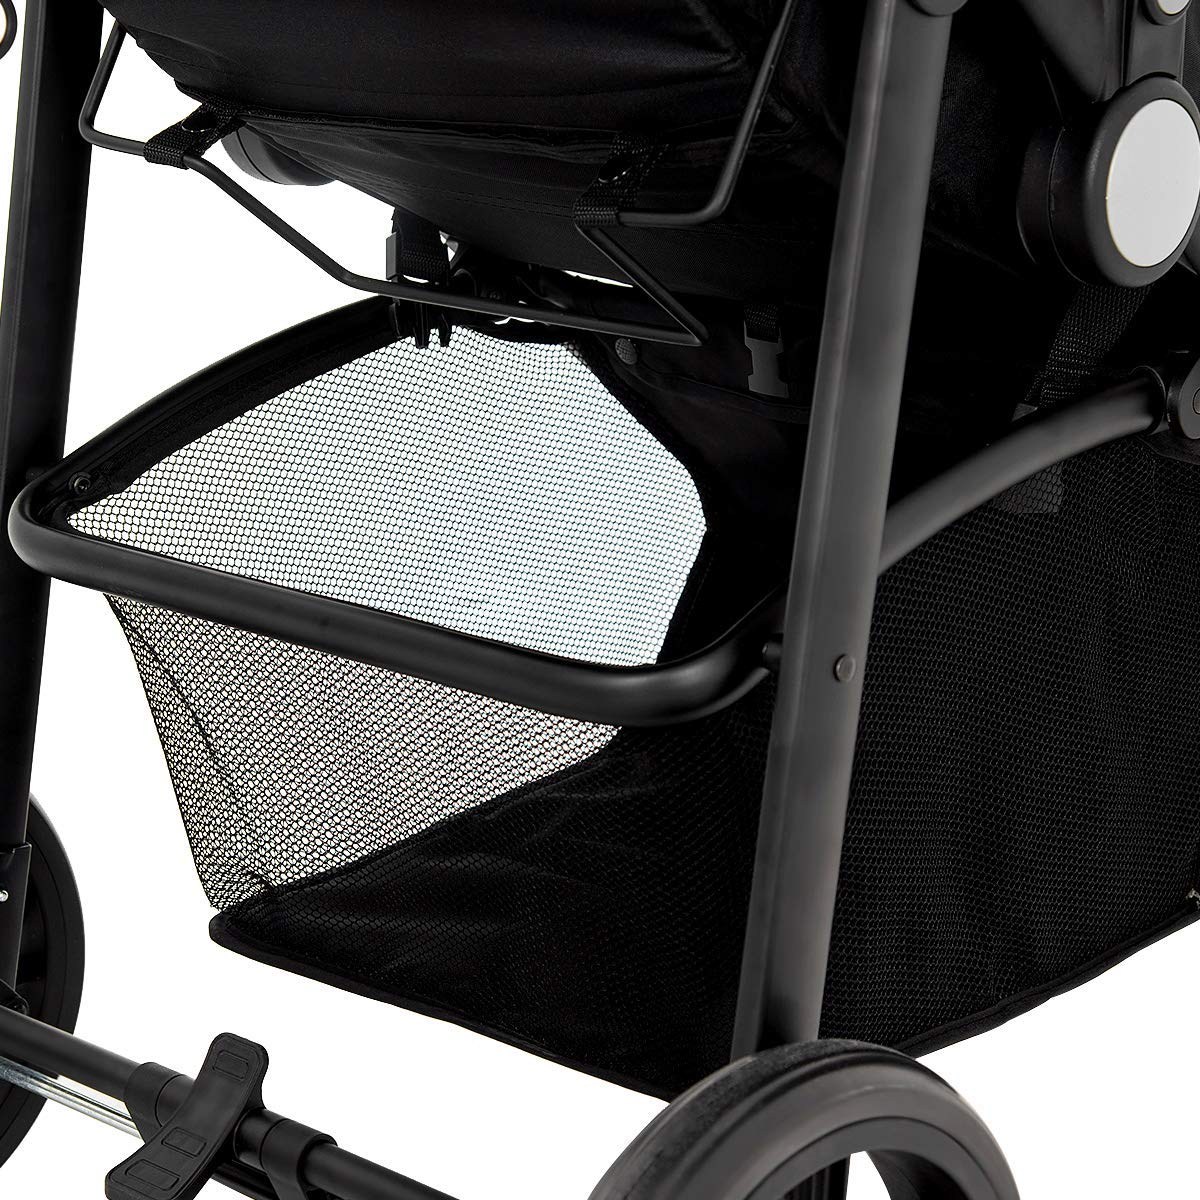 BABY JOY Baby Stroller, 2 in 1 Convertible Carriage Bassinet to Stroller, Pushchair with Foot Cover, Cup Holder, Large Storage Space, Wheels Suspension, 5-Point Harness, Deluxe Black by BABY JOY (Image #8)